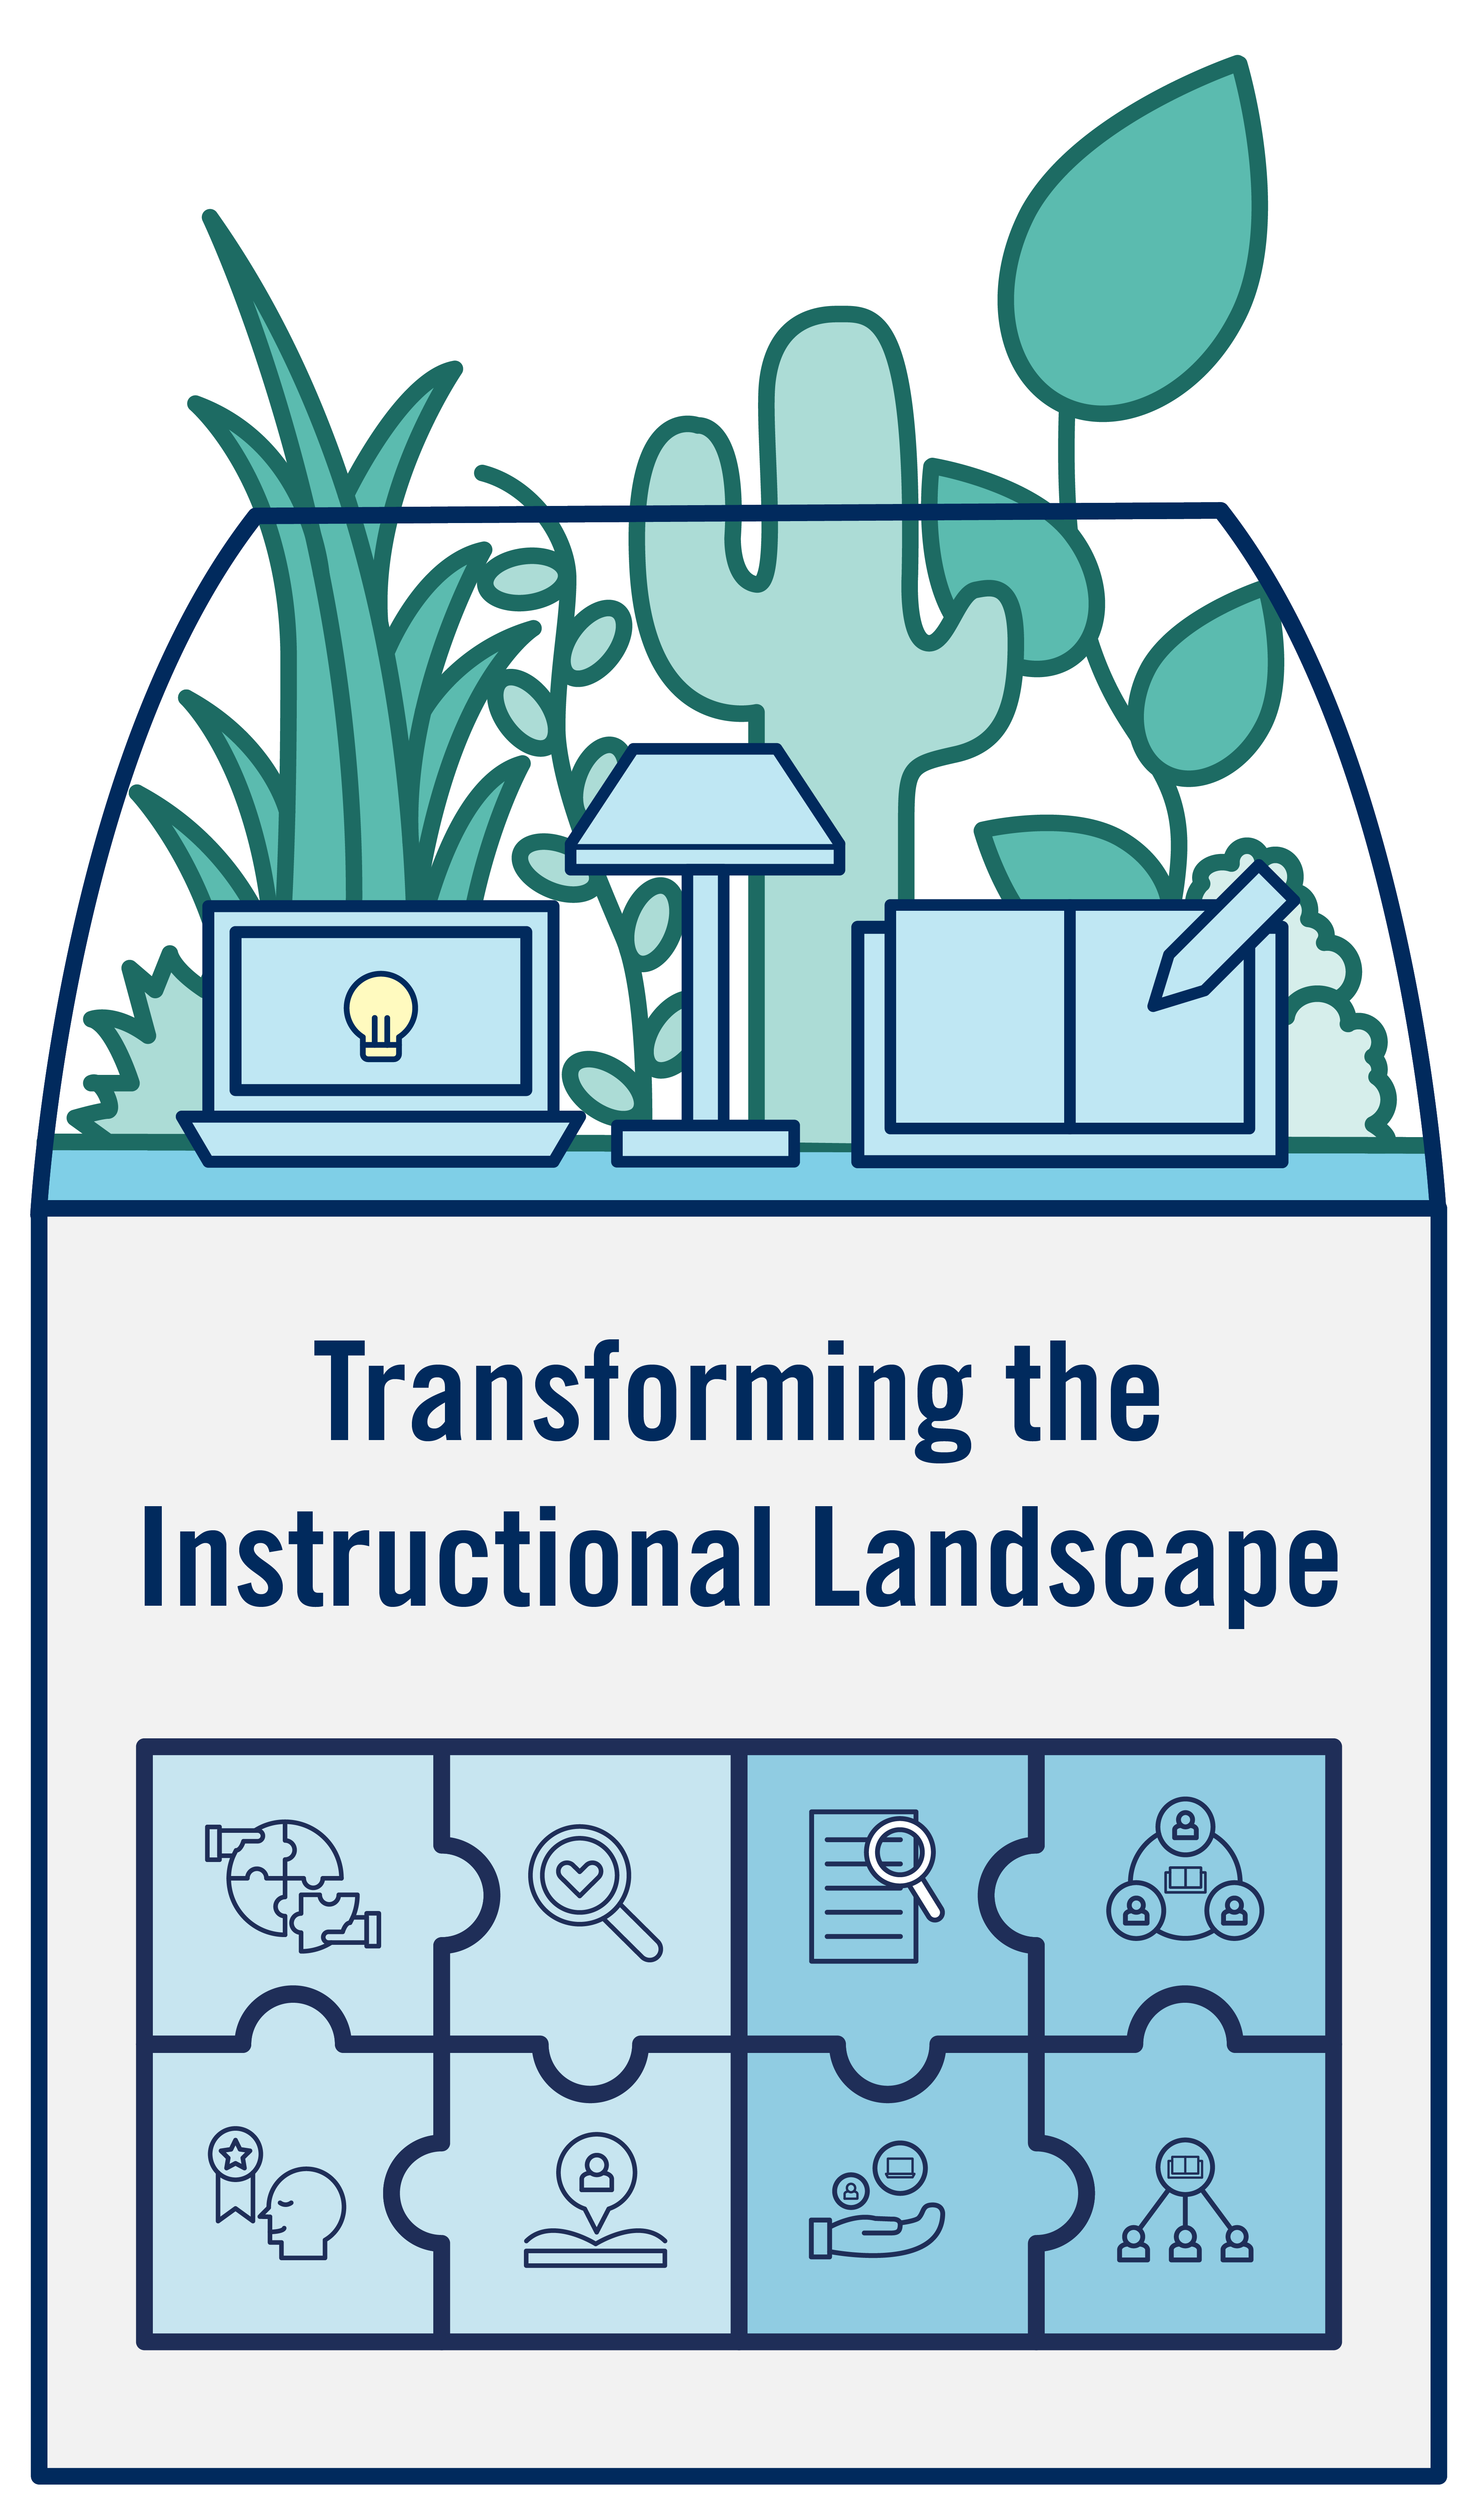 An illustration of a terrarium that represents the core principles of Transforming the Instructional Landscape